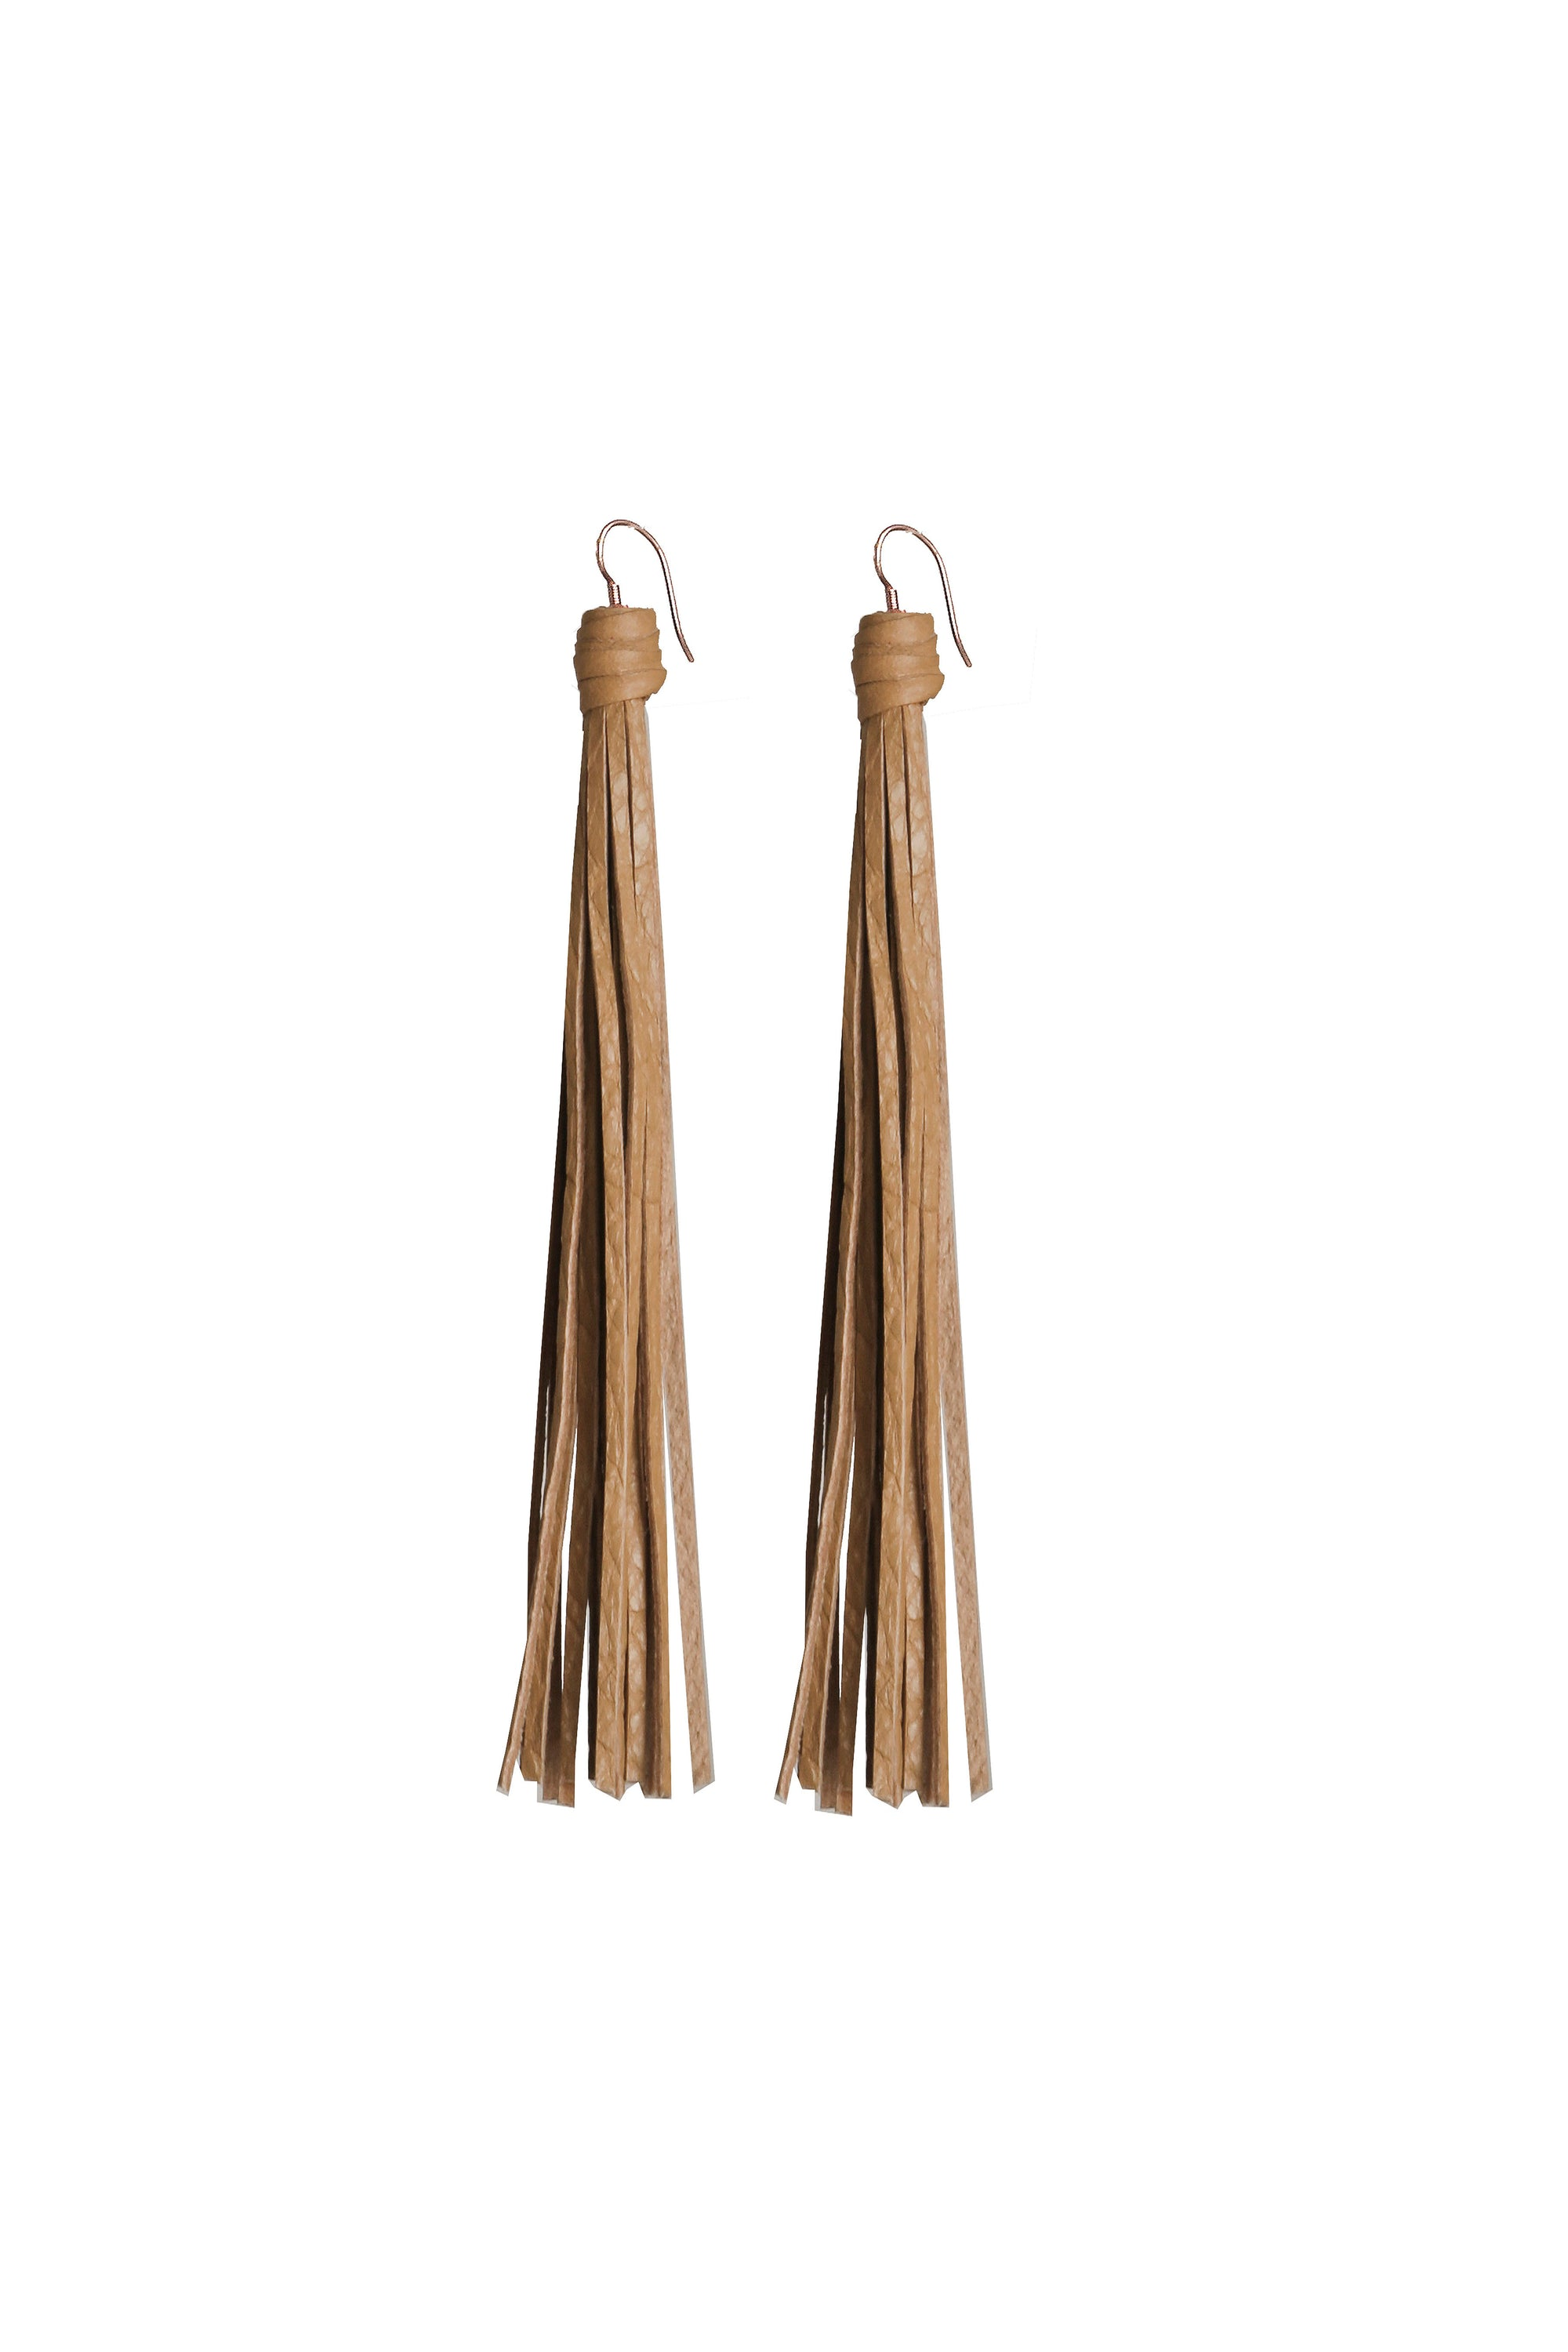 The Reborn Rock 'n Fringe Earrings